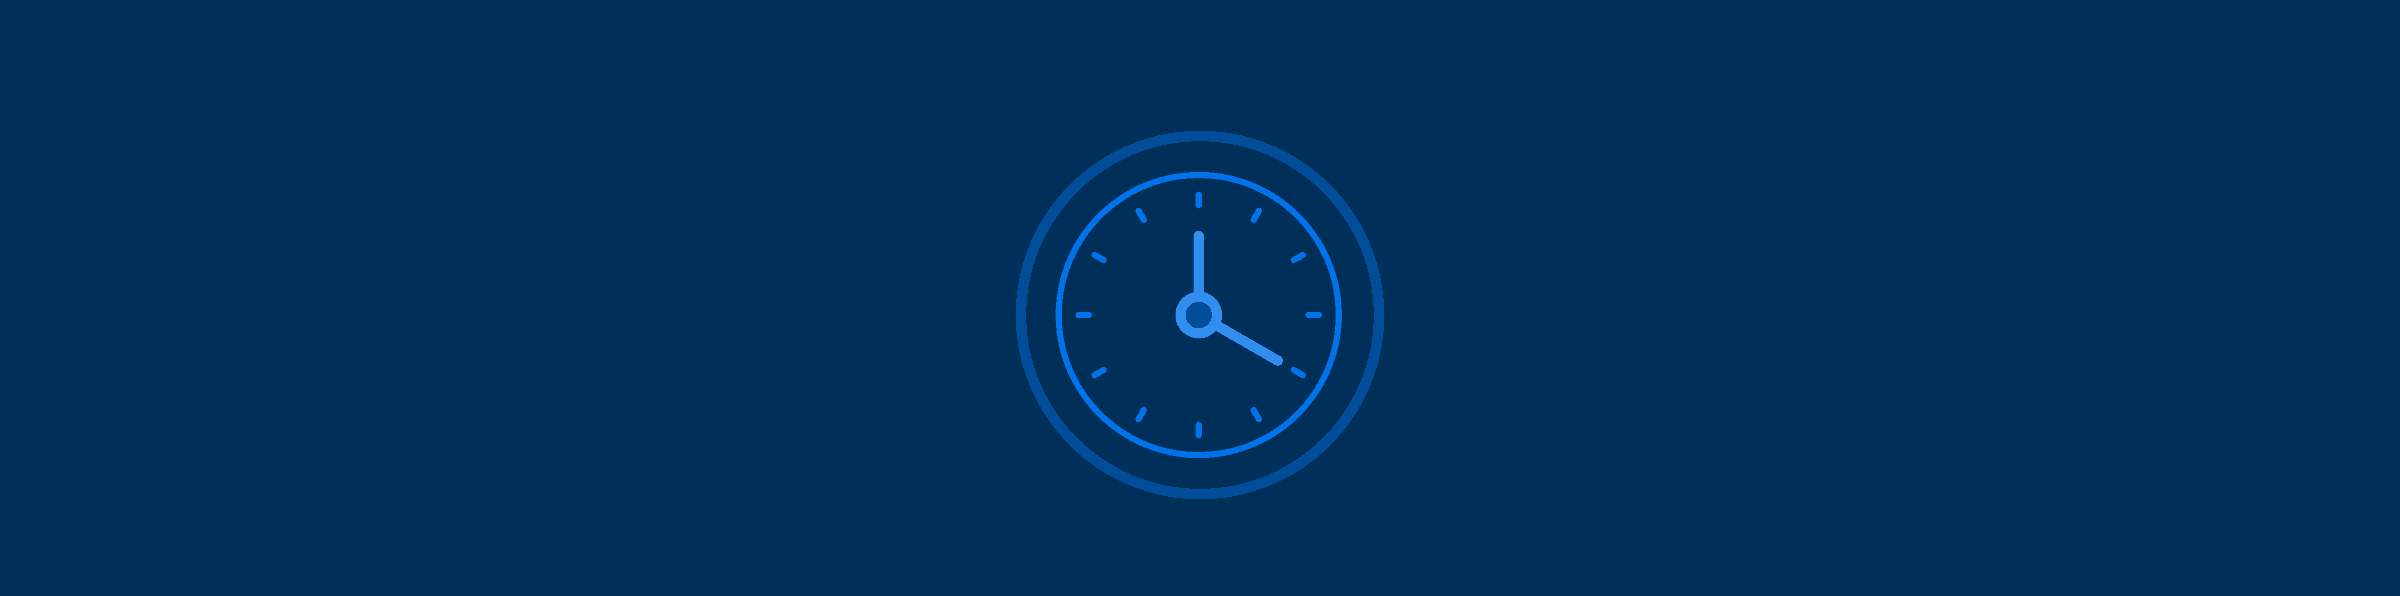 Graphic with an icon of a clock